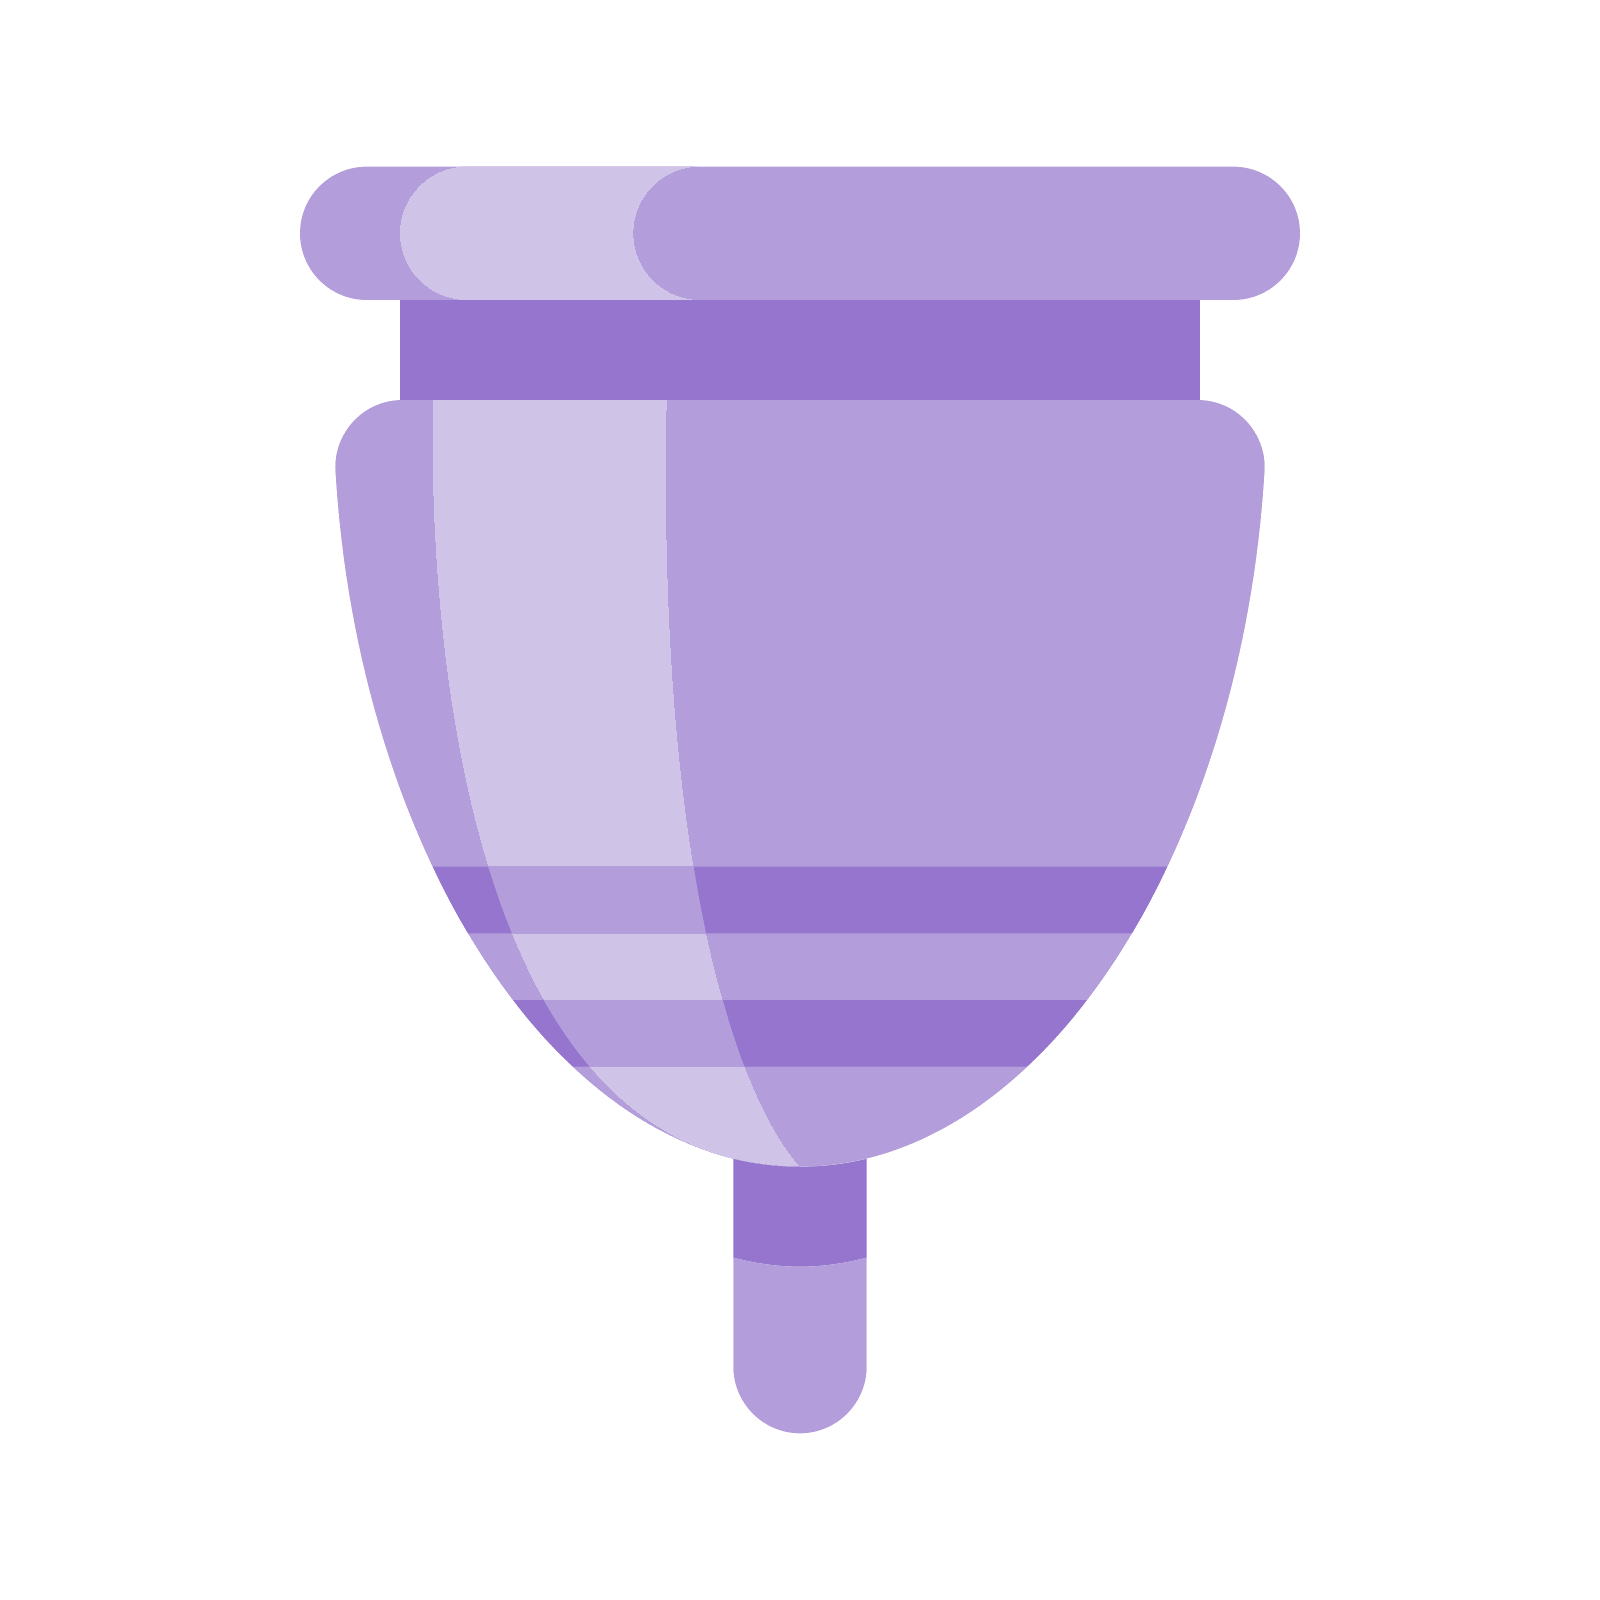 Cup clipart purple cup. Menstrual icon free download